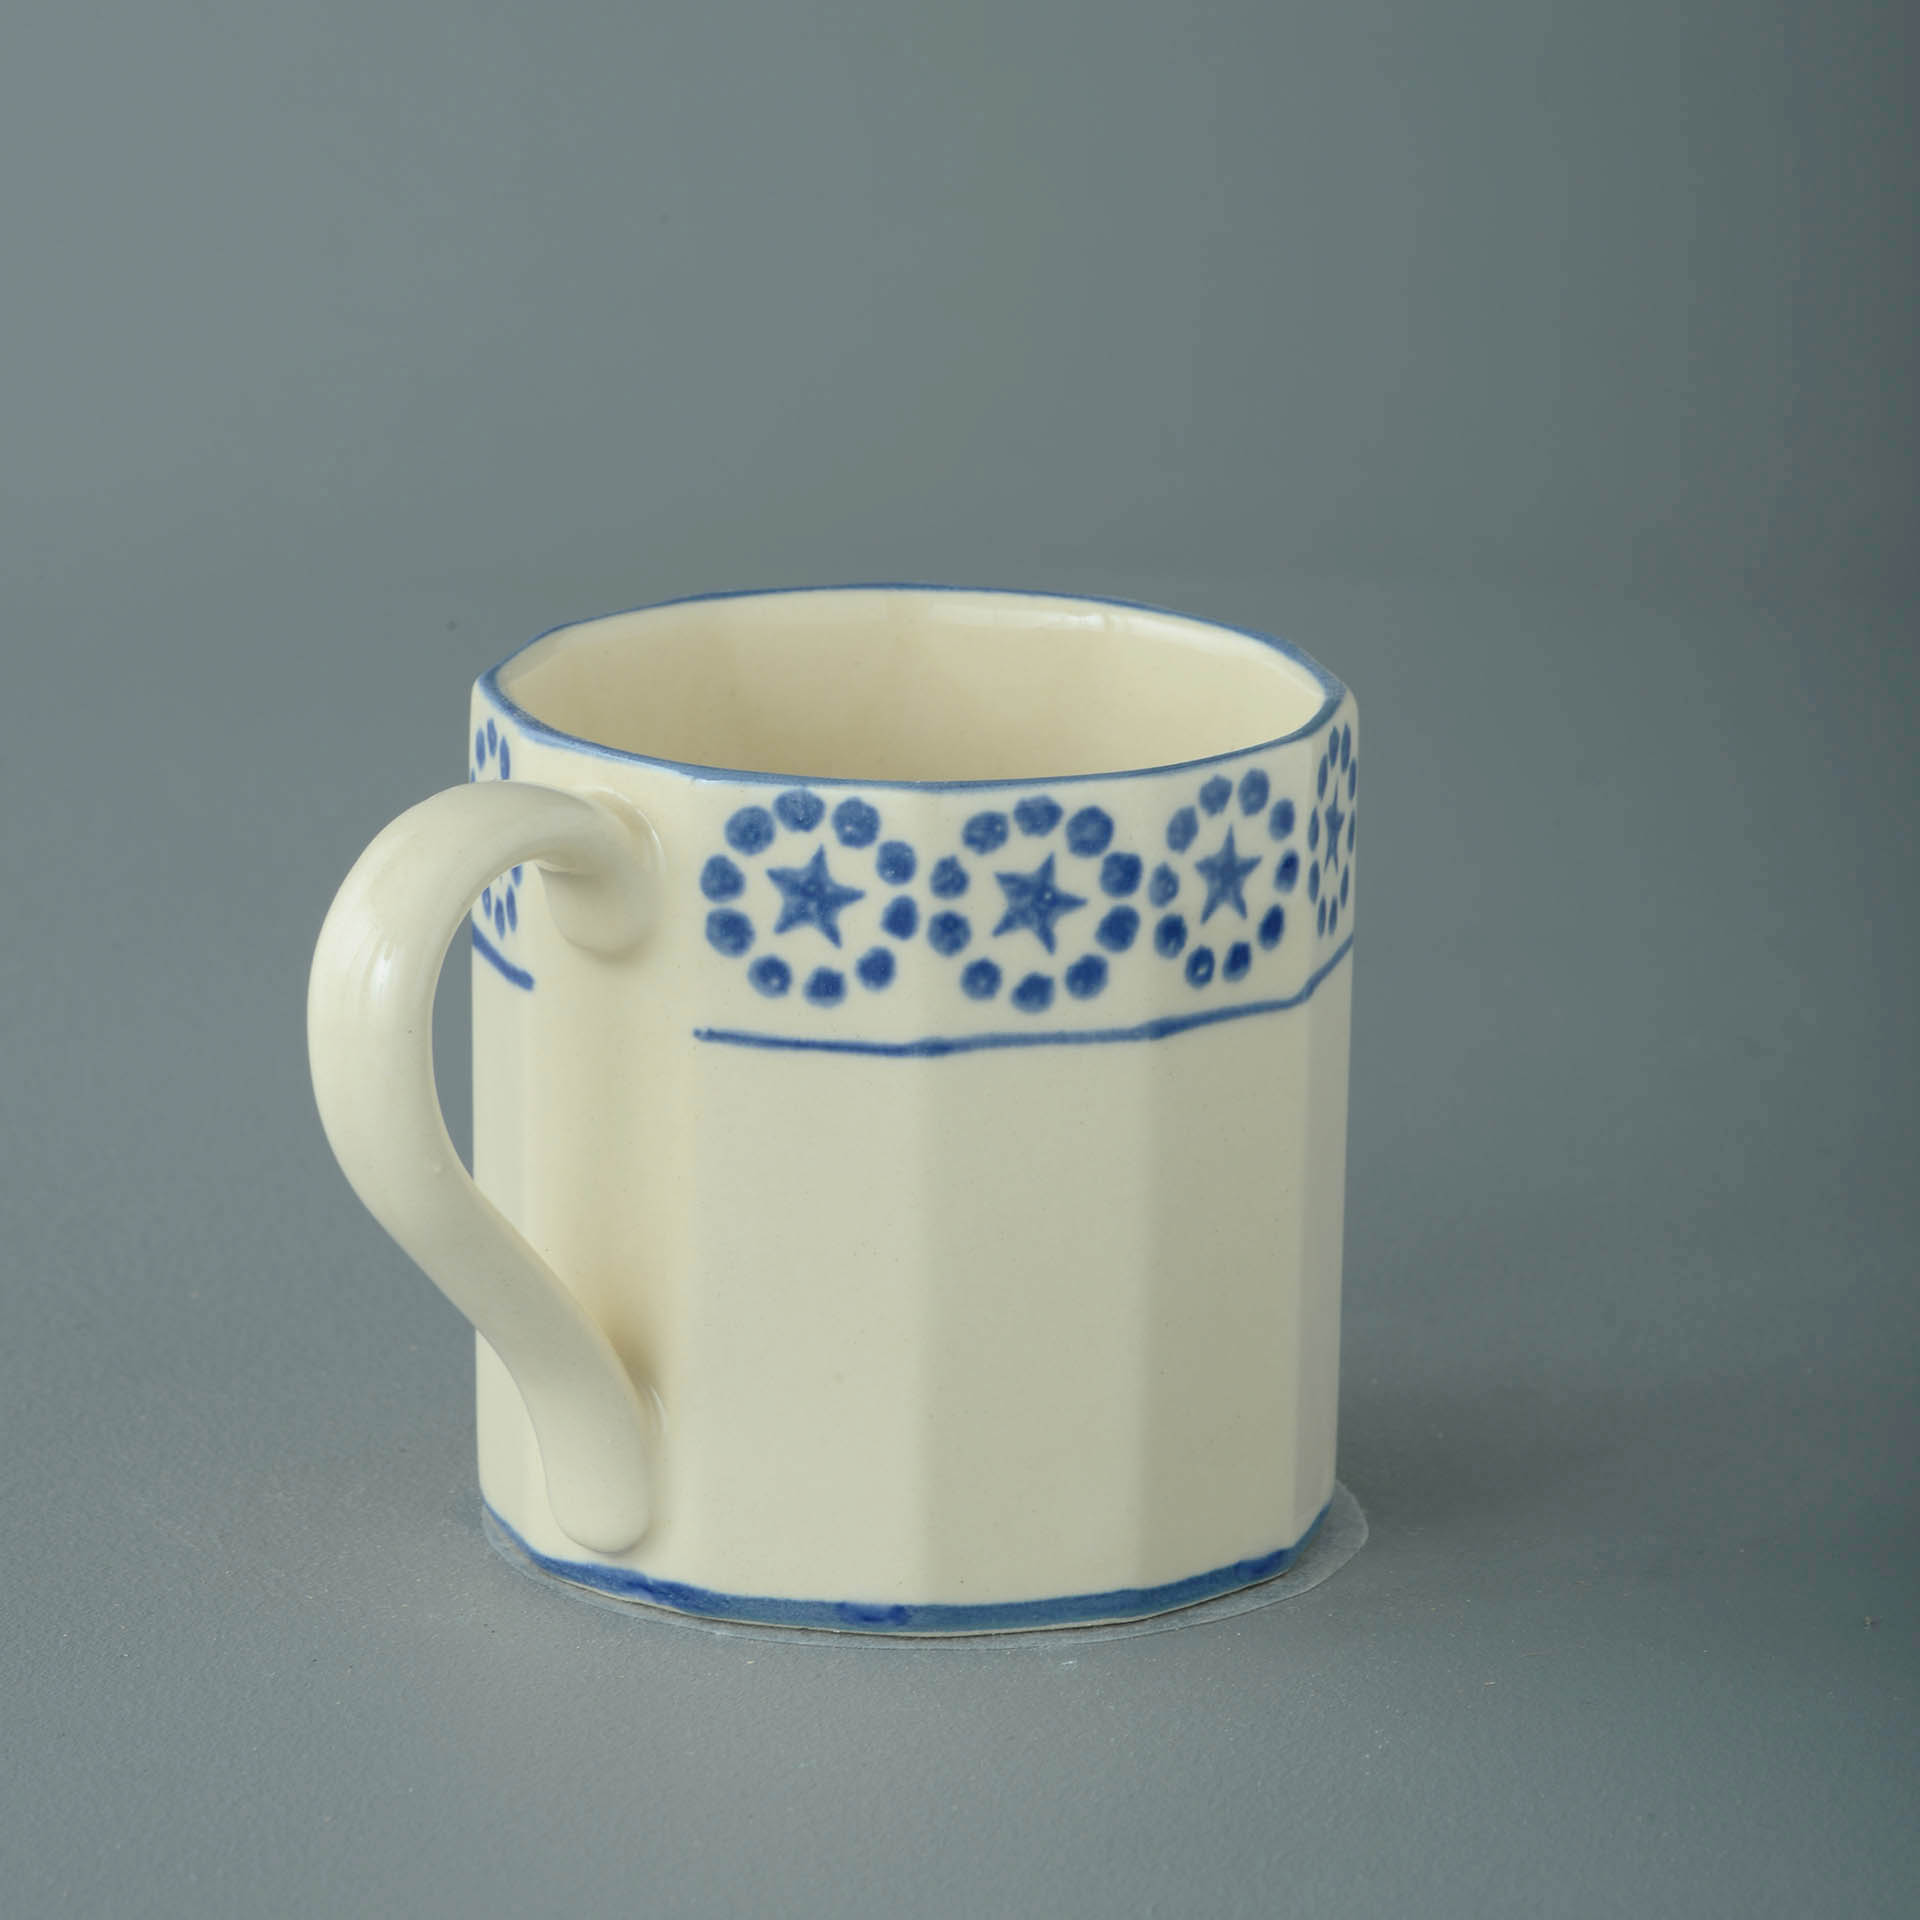 Blue Star Dufort French style Mug Small